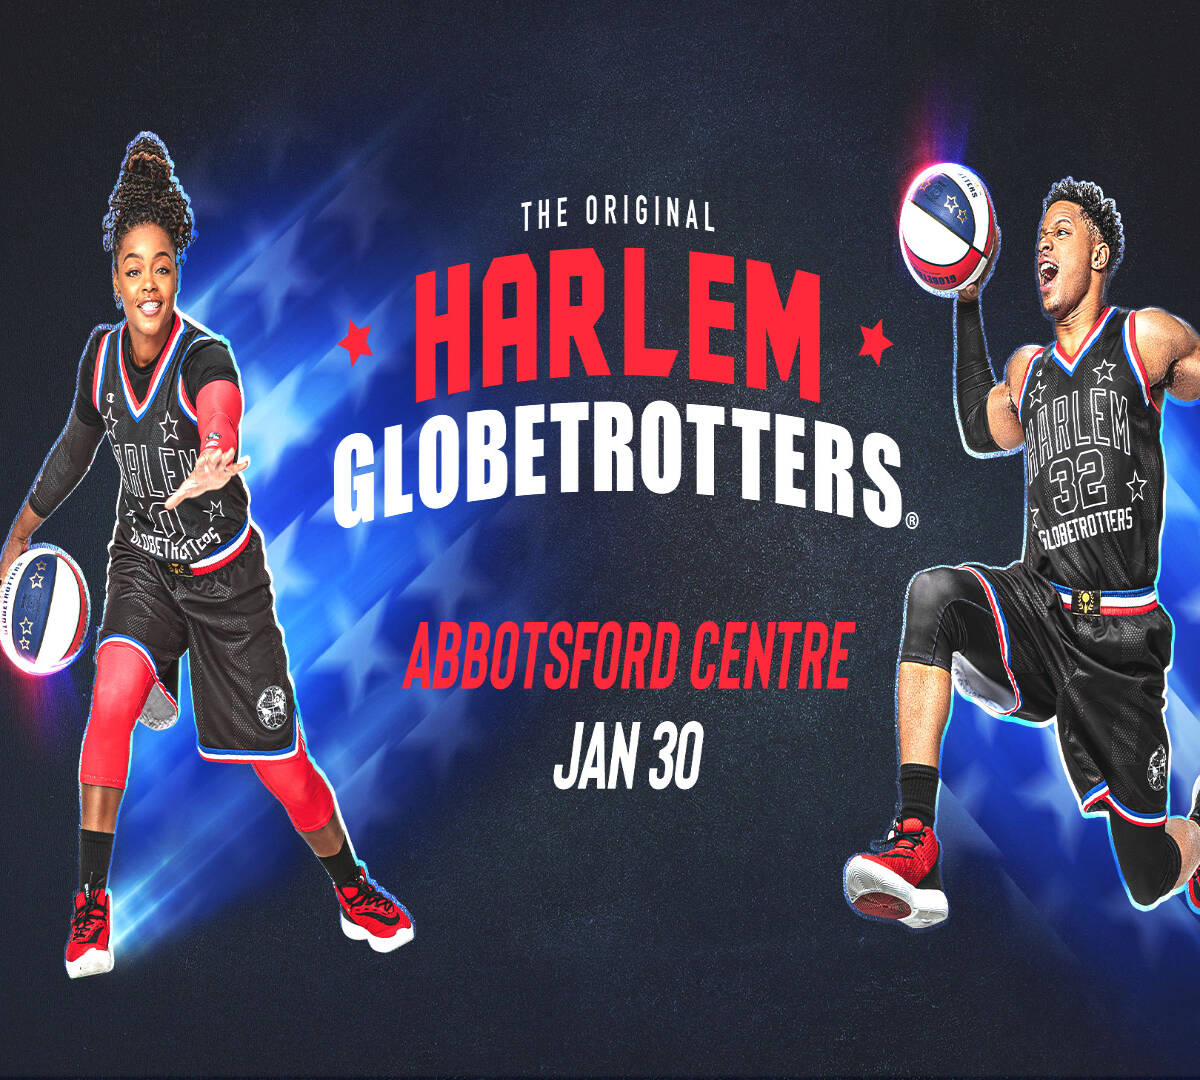 The Harlem Globetrotters are coming to the Abbotsford Centre on Jan. 30, 2022. (Submitted)